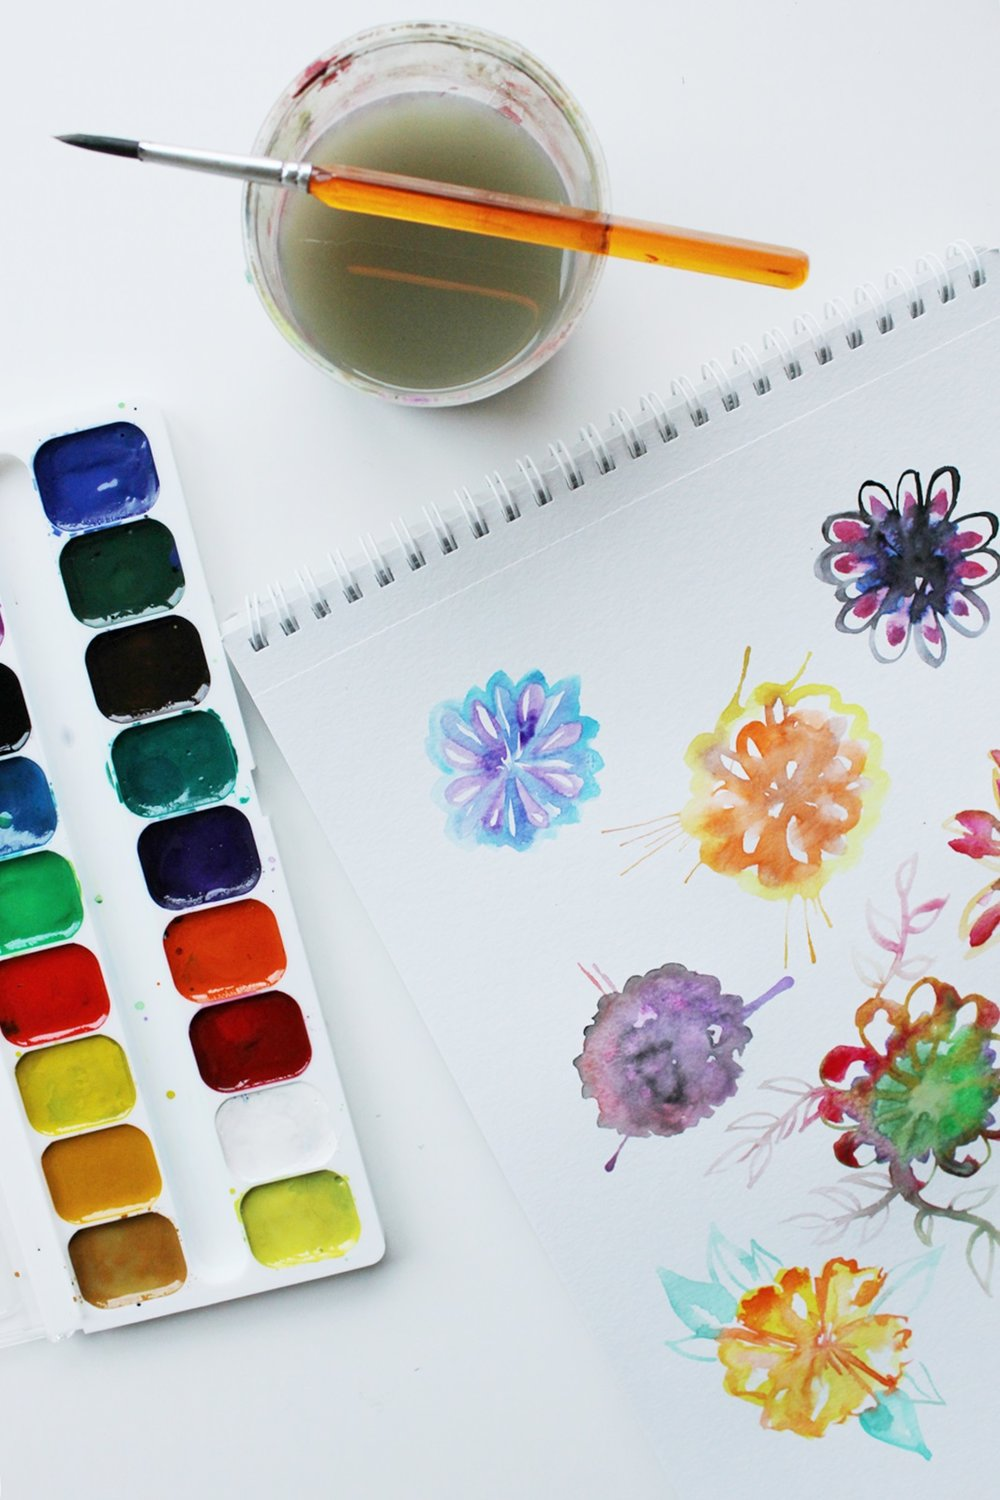 Tutorial on how to draw various watercolor flowers. Process photos!